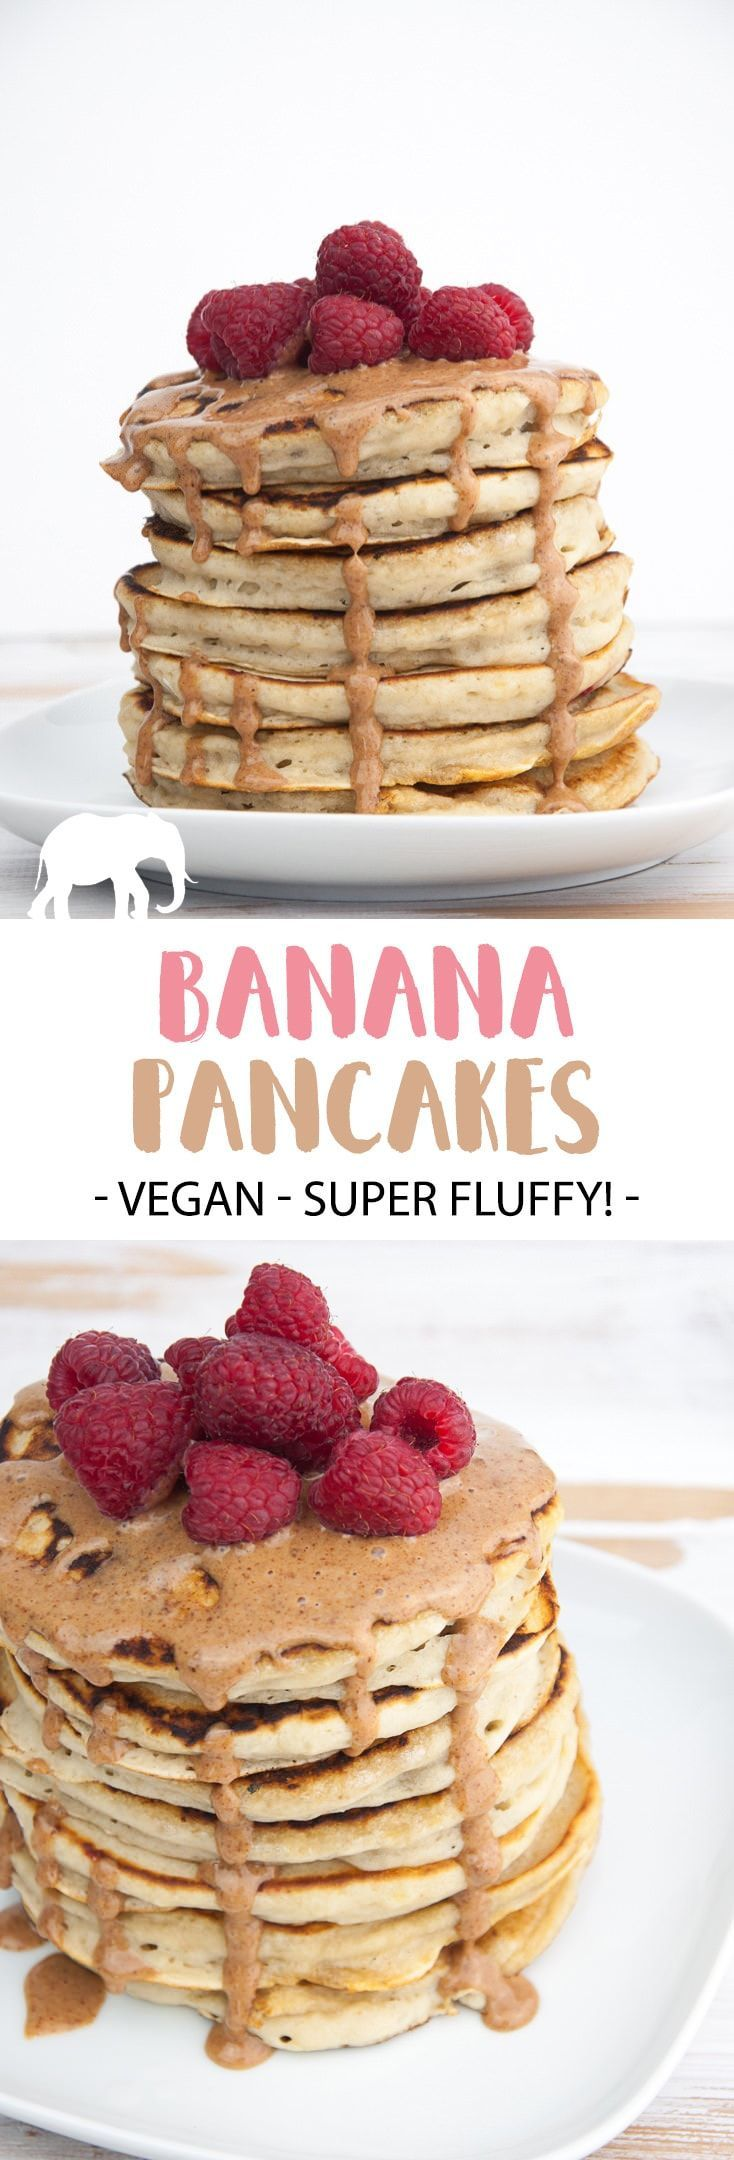 Vegan Banana Pancakes topped with almond butter and raspberries. Easy and quick to make! The perfect Sunday breakfast! |